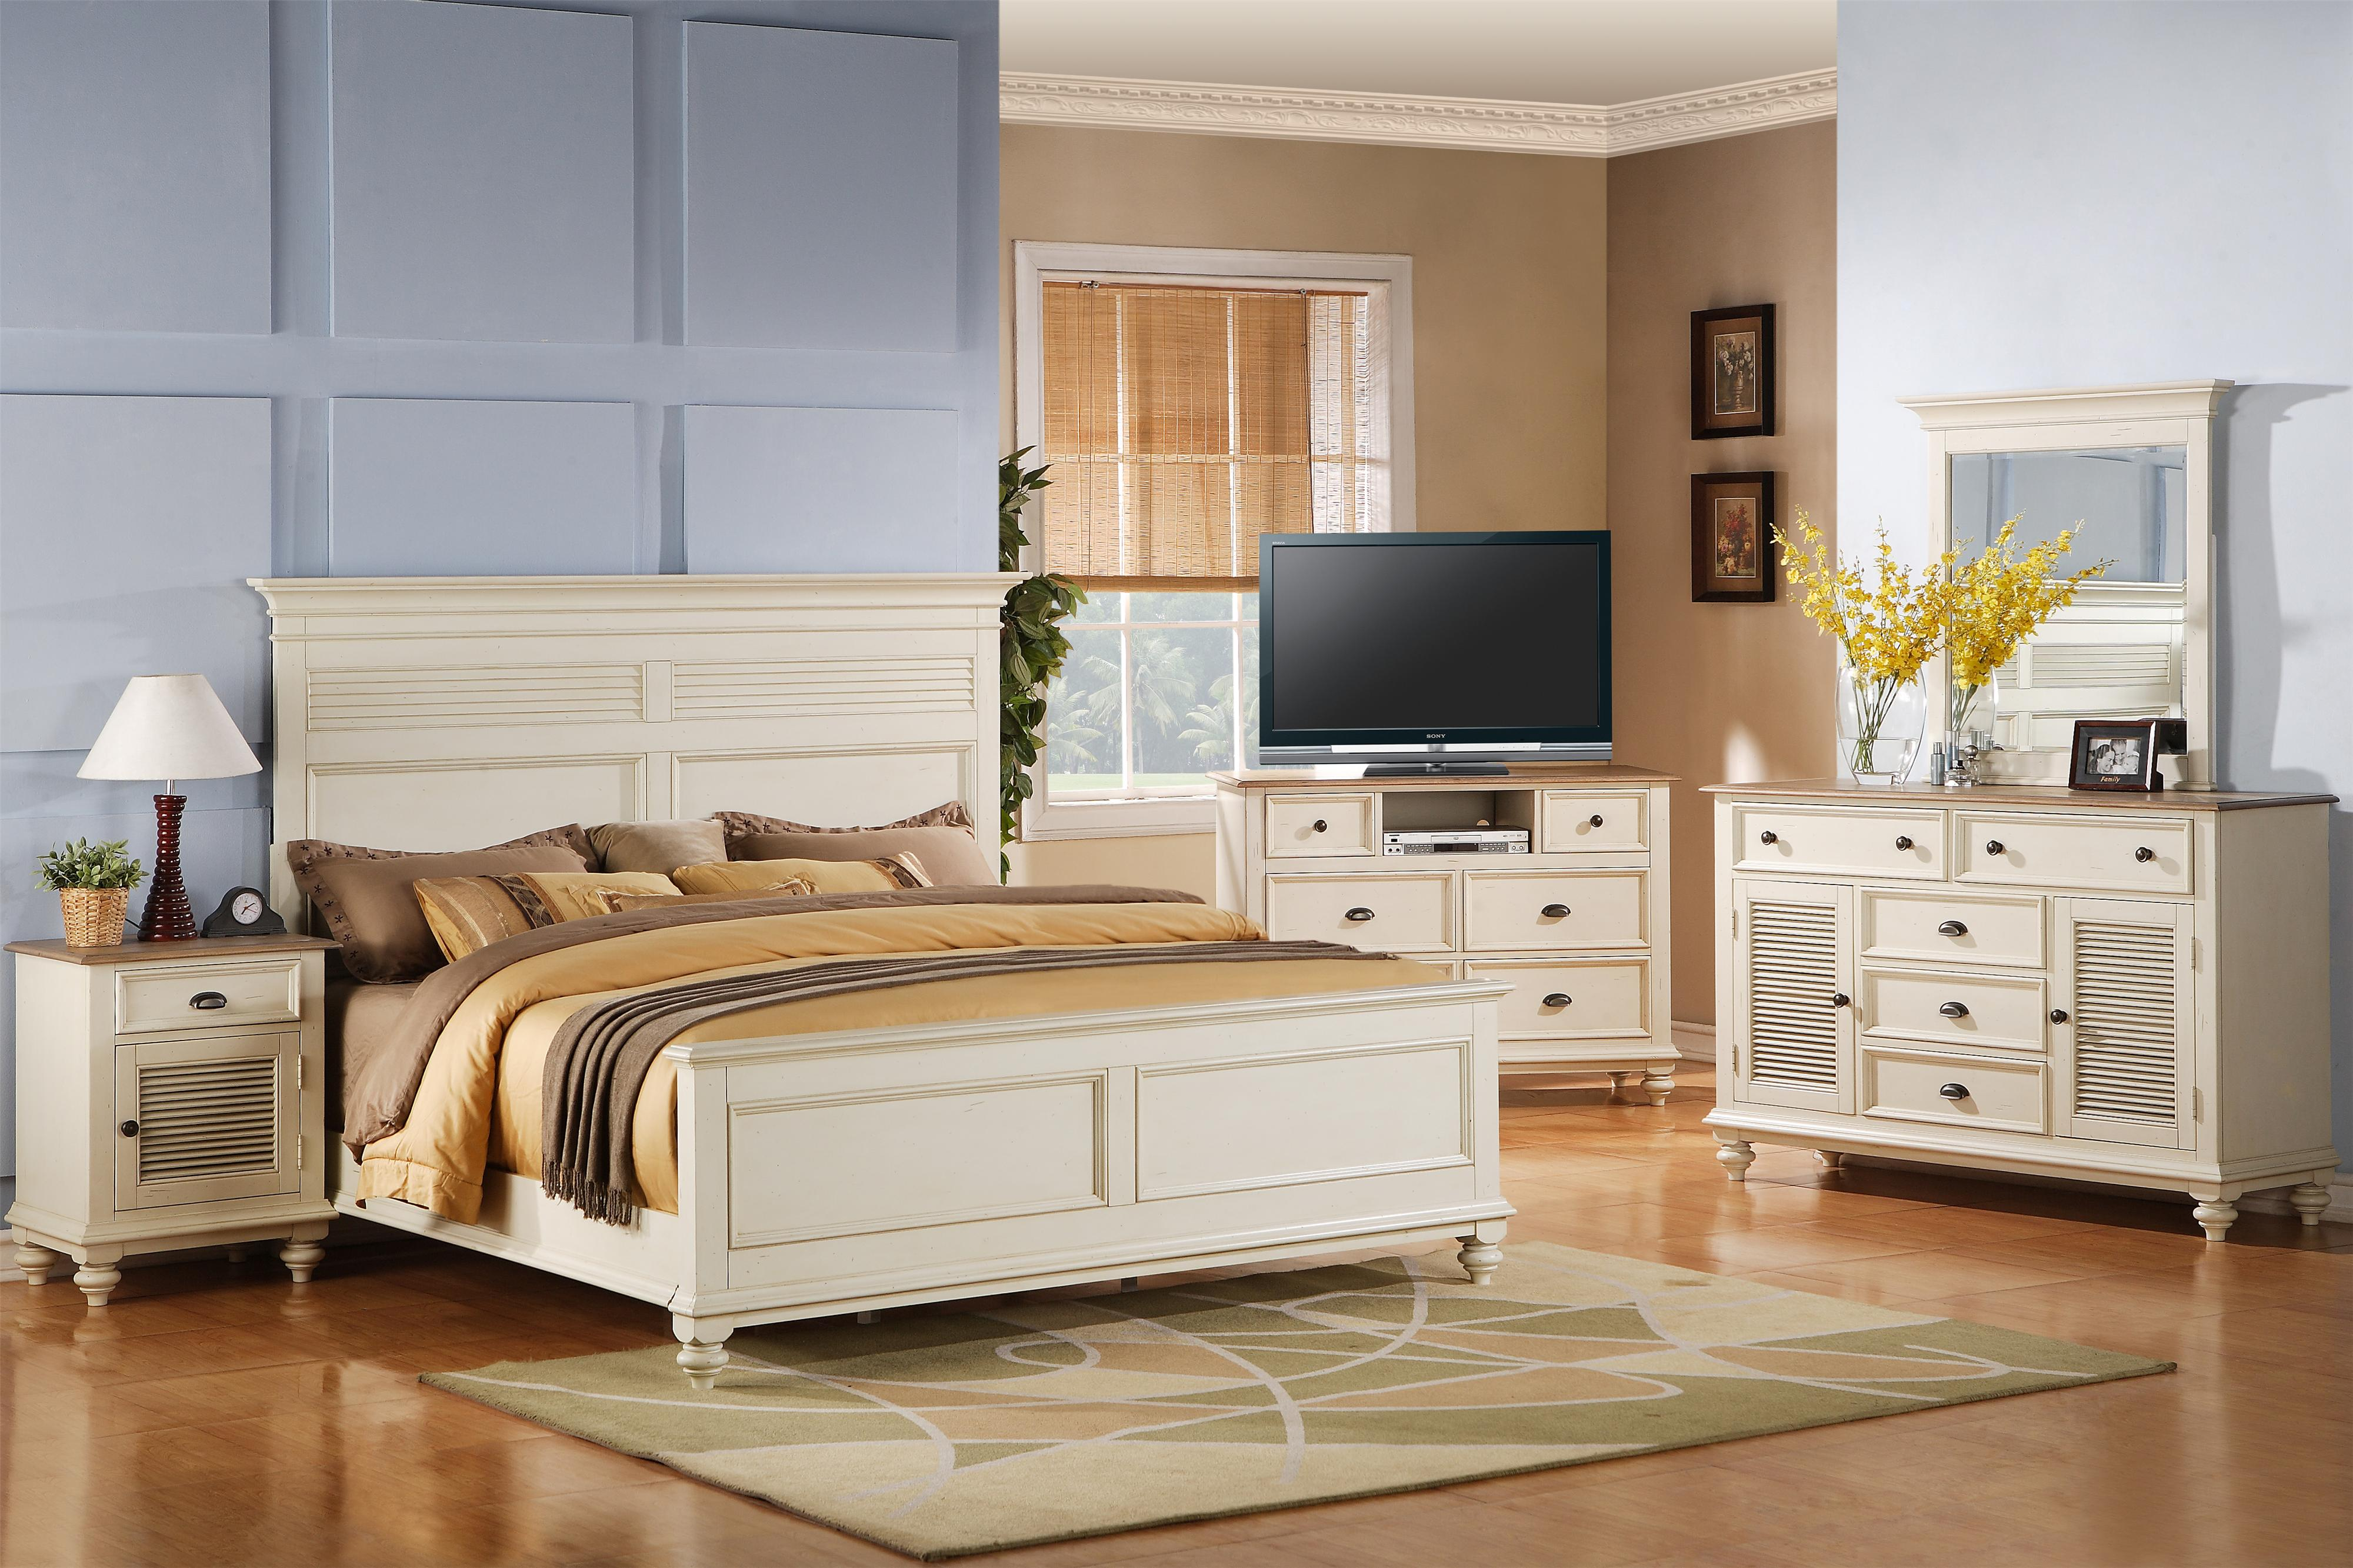 Riverside Furniture Coventry Two Tone King Bedroom Group - Item Number: 32500 K Bedroom Group 16